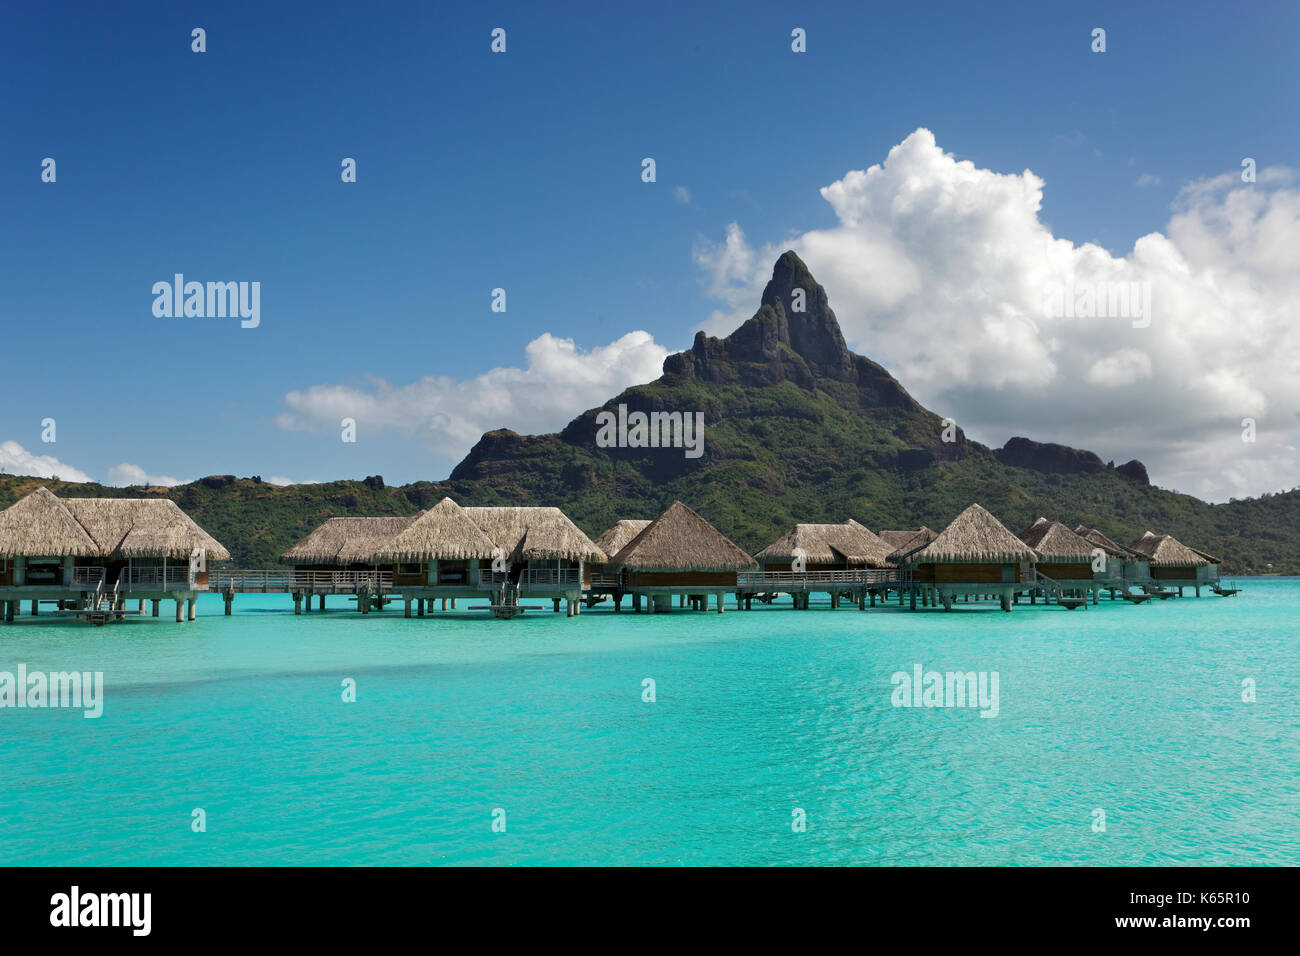 Water bungalows in turquoise lagoon in front of Mont Otemanu, Bora Bora Island, Society Islands, French Polynesia - Stock Image